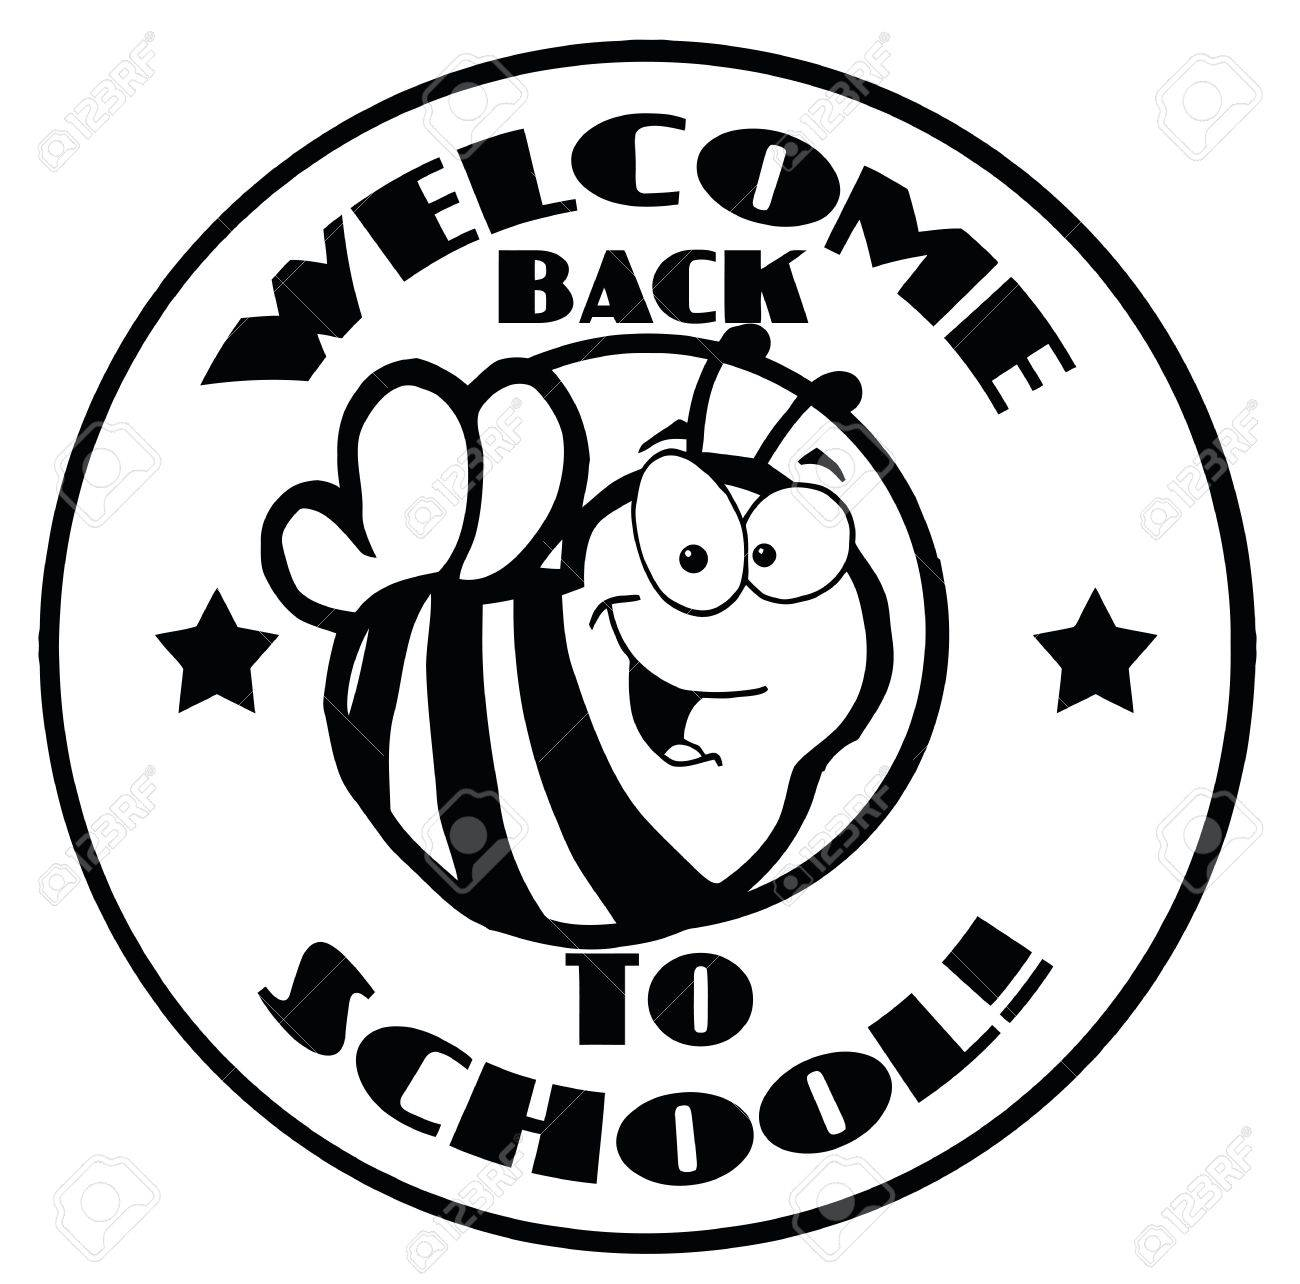 black and white welcome back to school bee circle royalty free